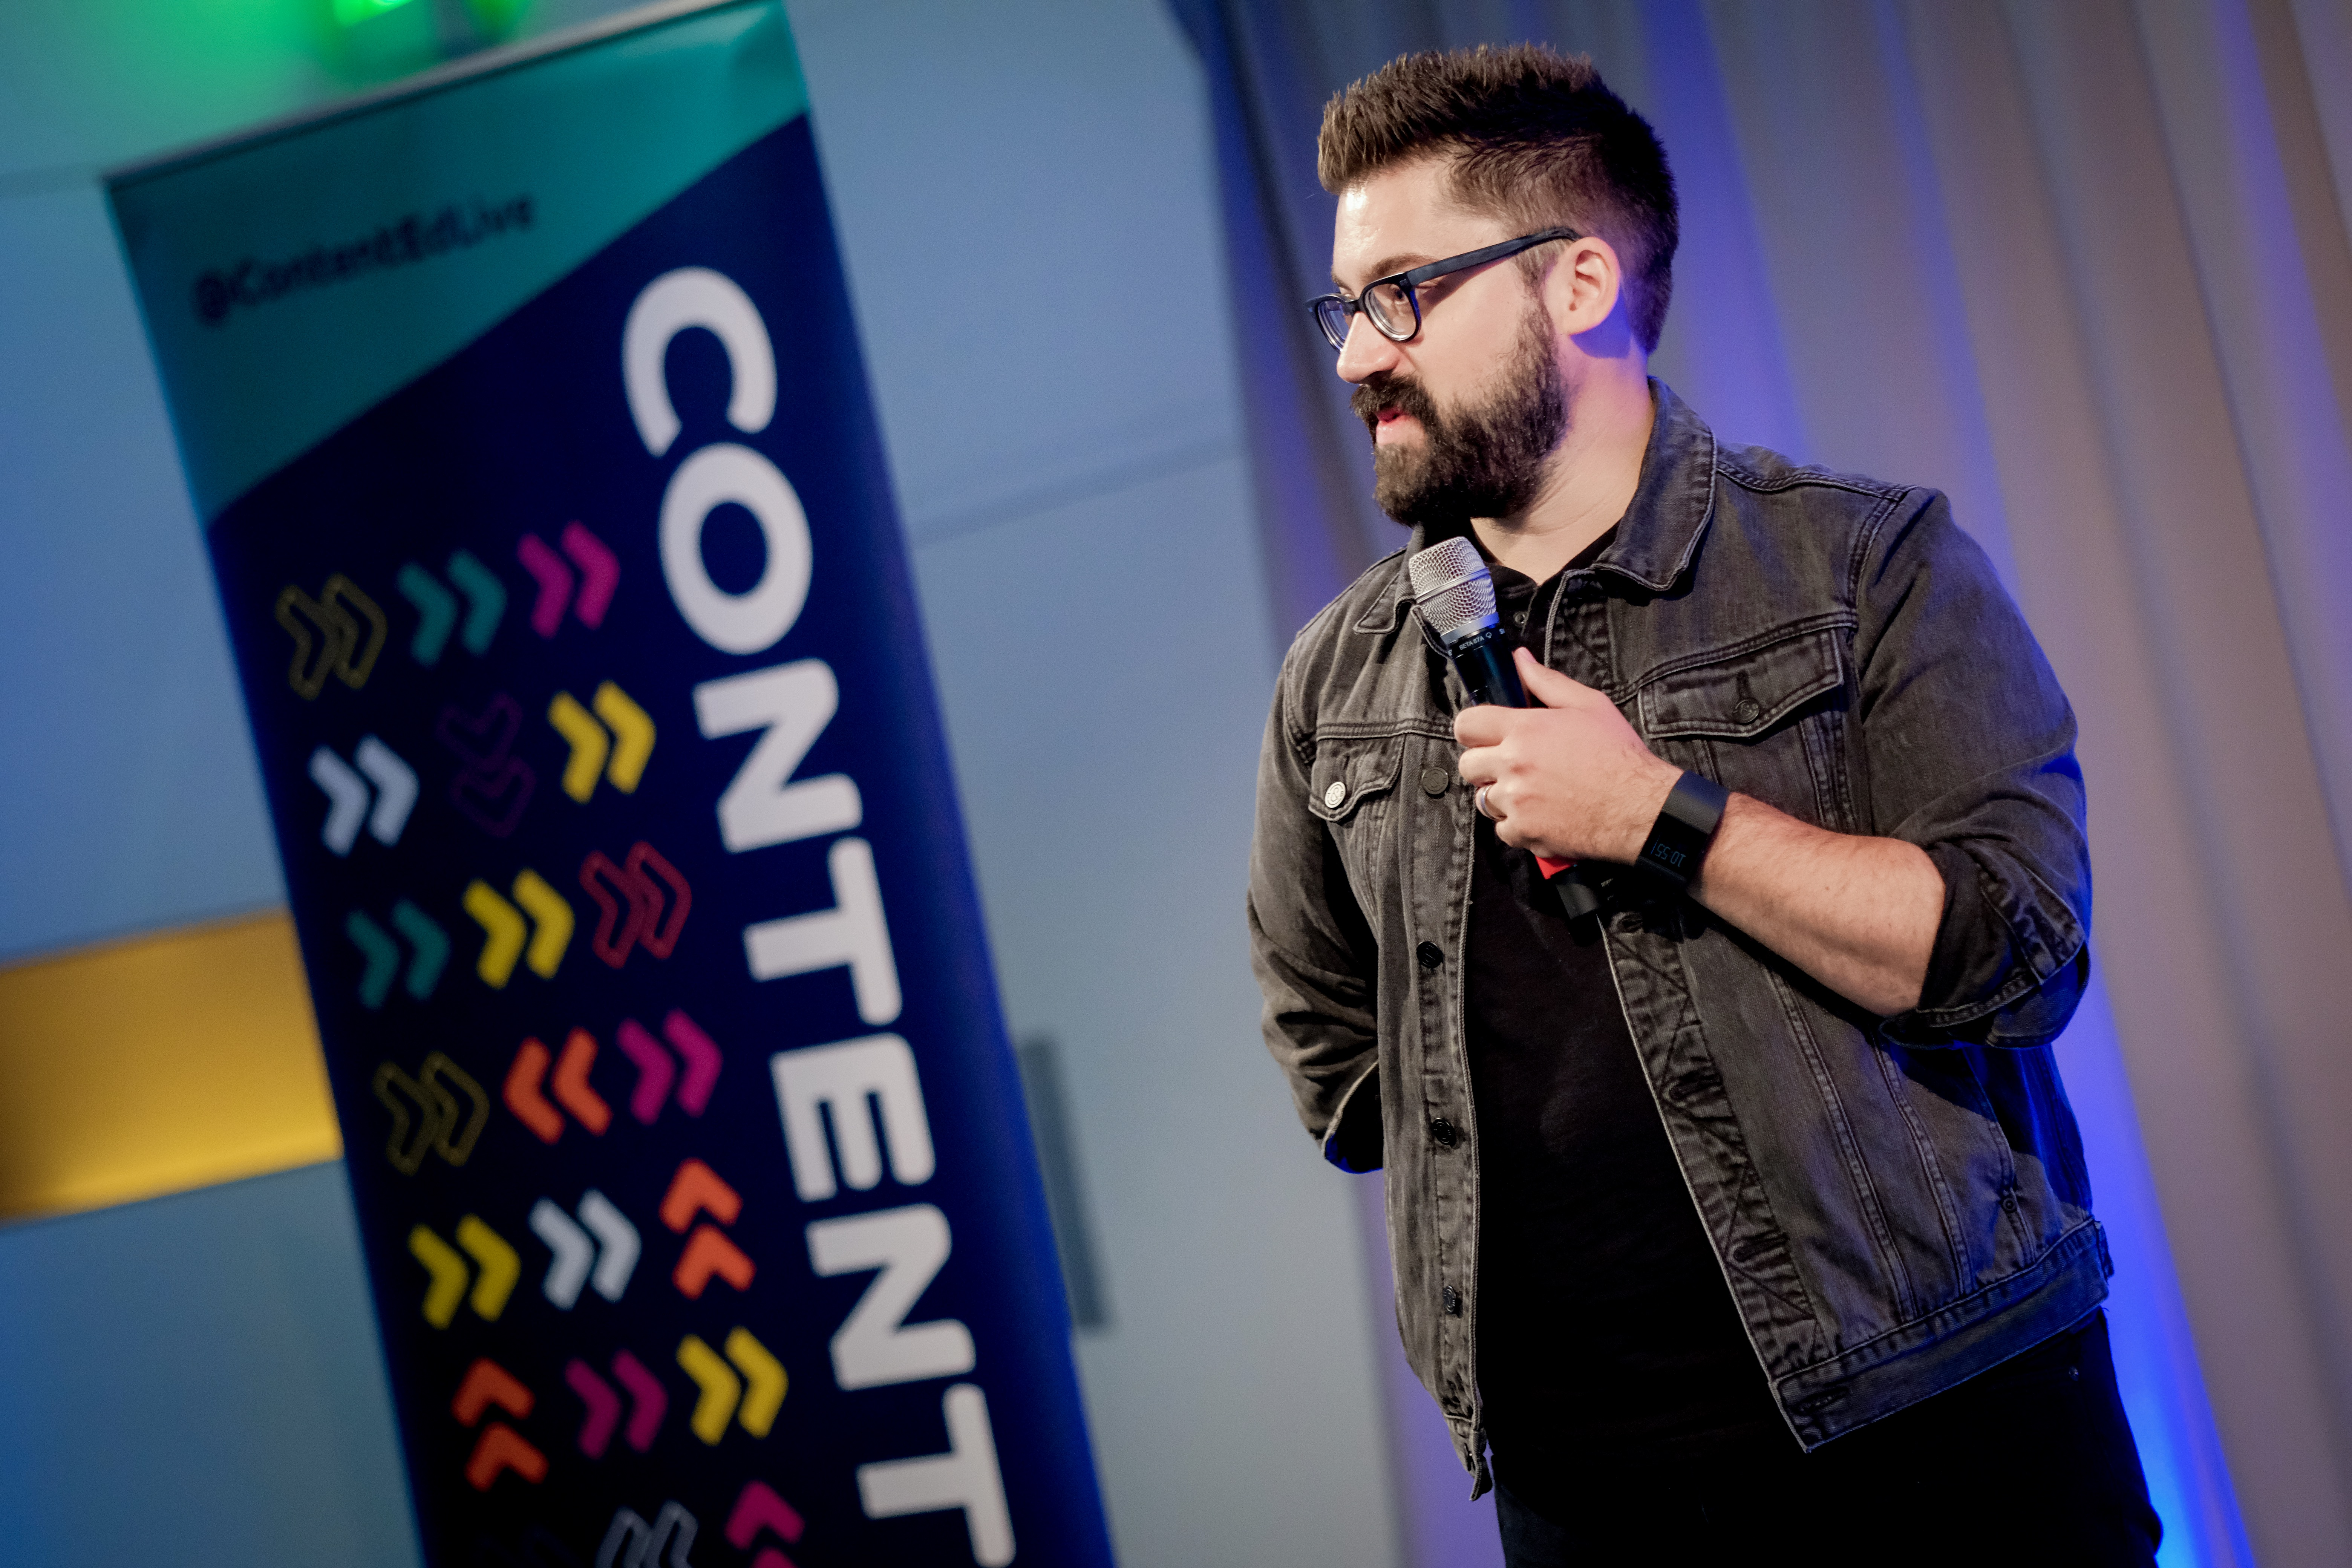 Austin Kleon on stage at ContentEd 2019.